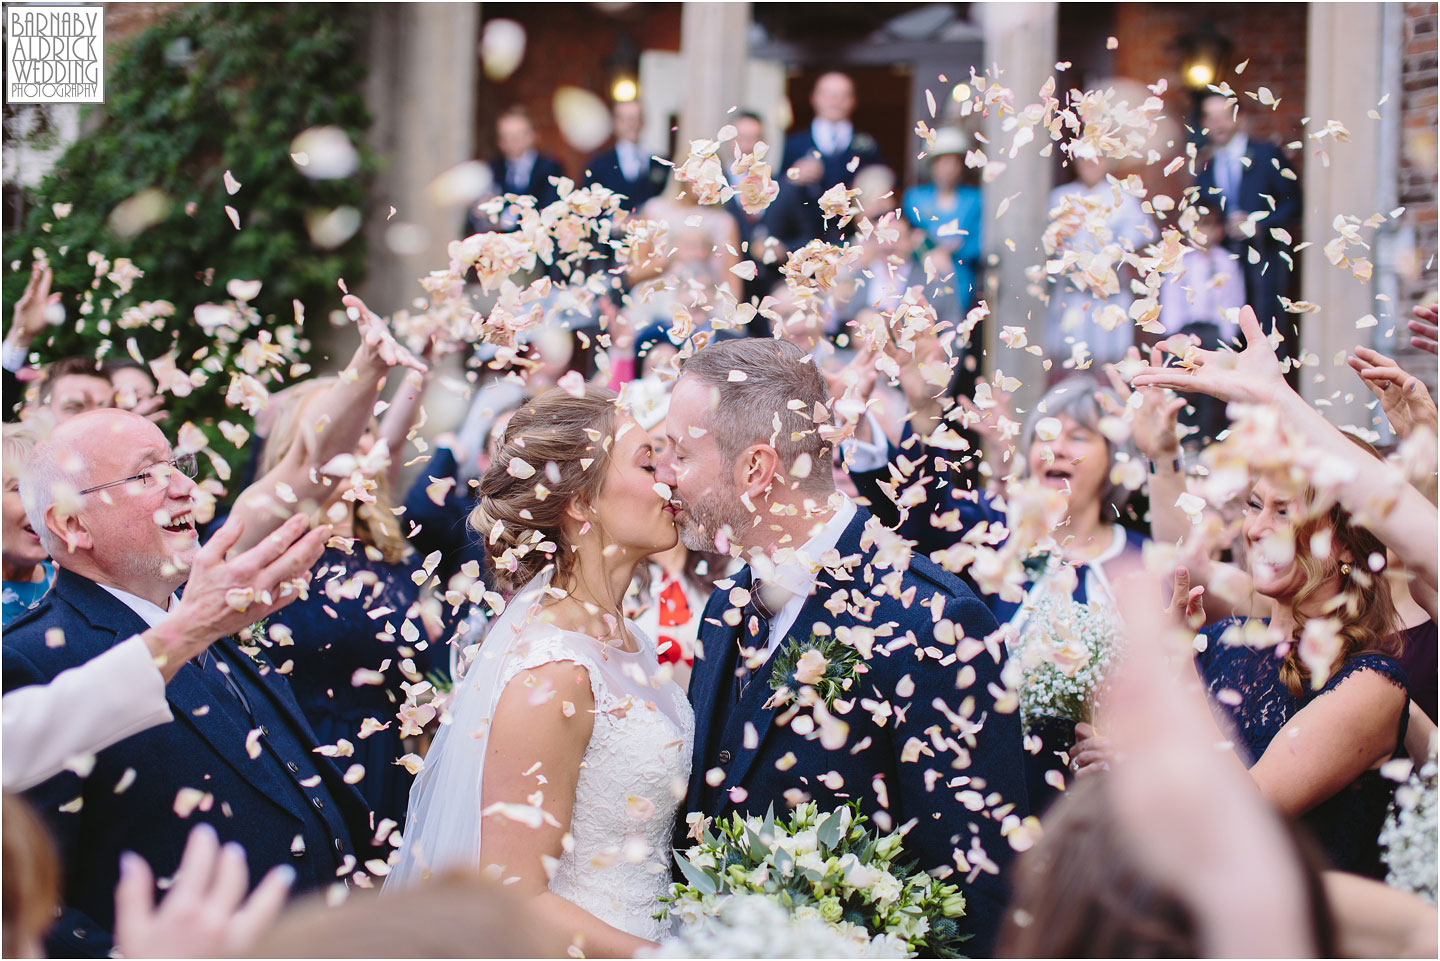 Amazing confetti wedding photo at Rowton Castle Wedding Photos, Shropshire Wedding Photographer, Shrewsbury wedding venue, Amazing UK Castle Wedding